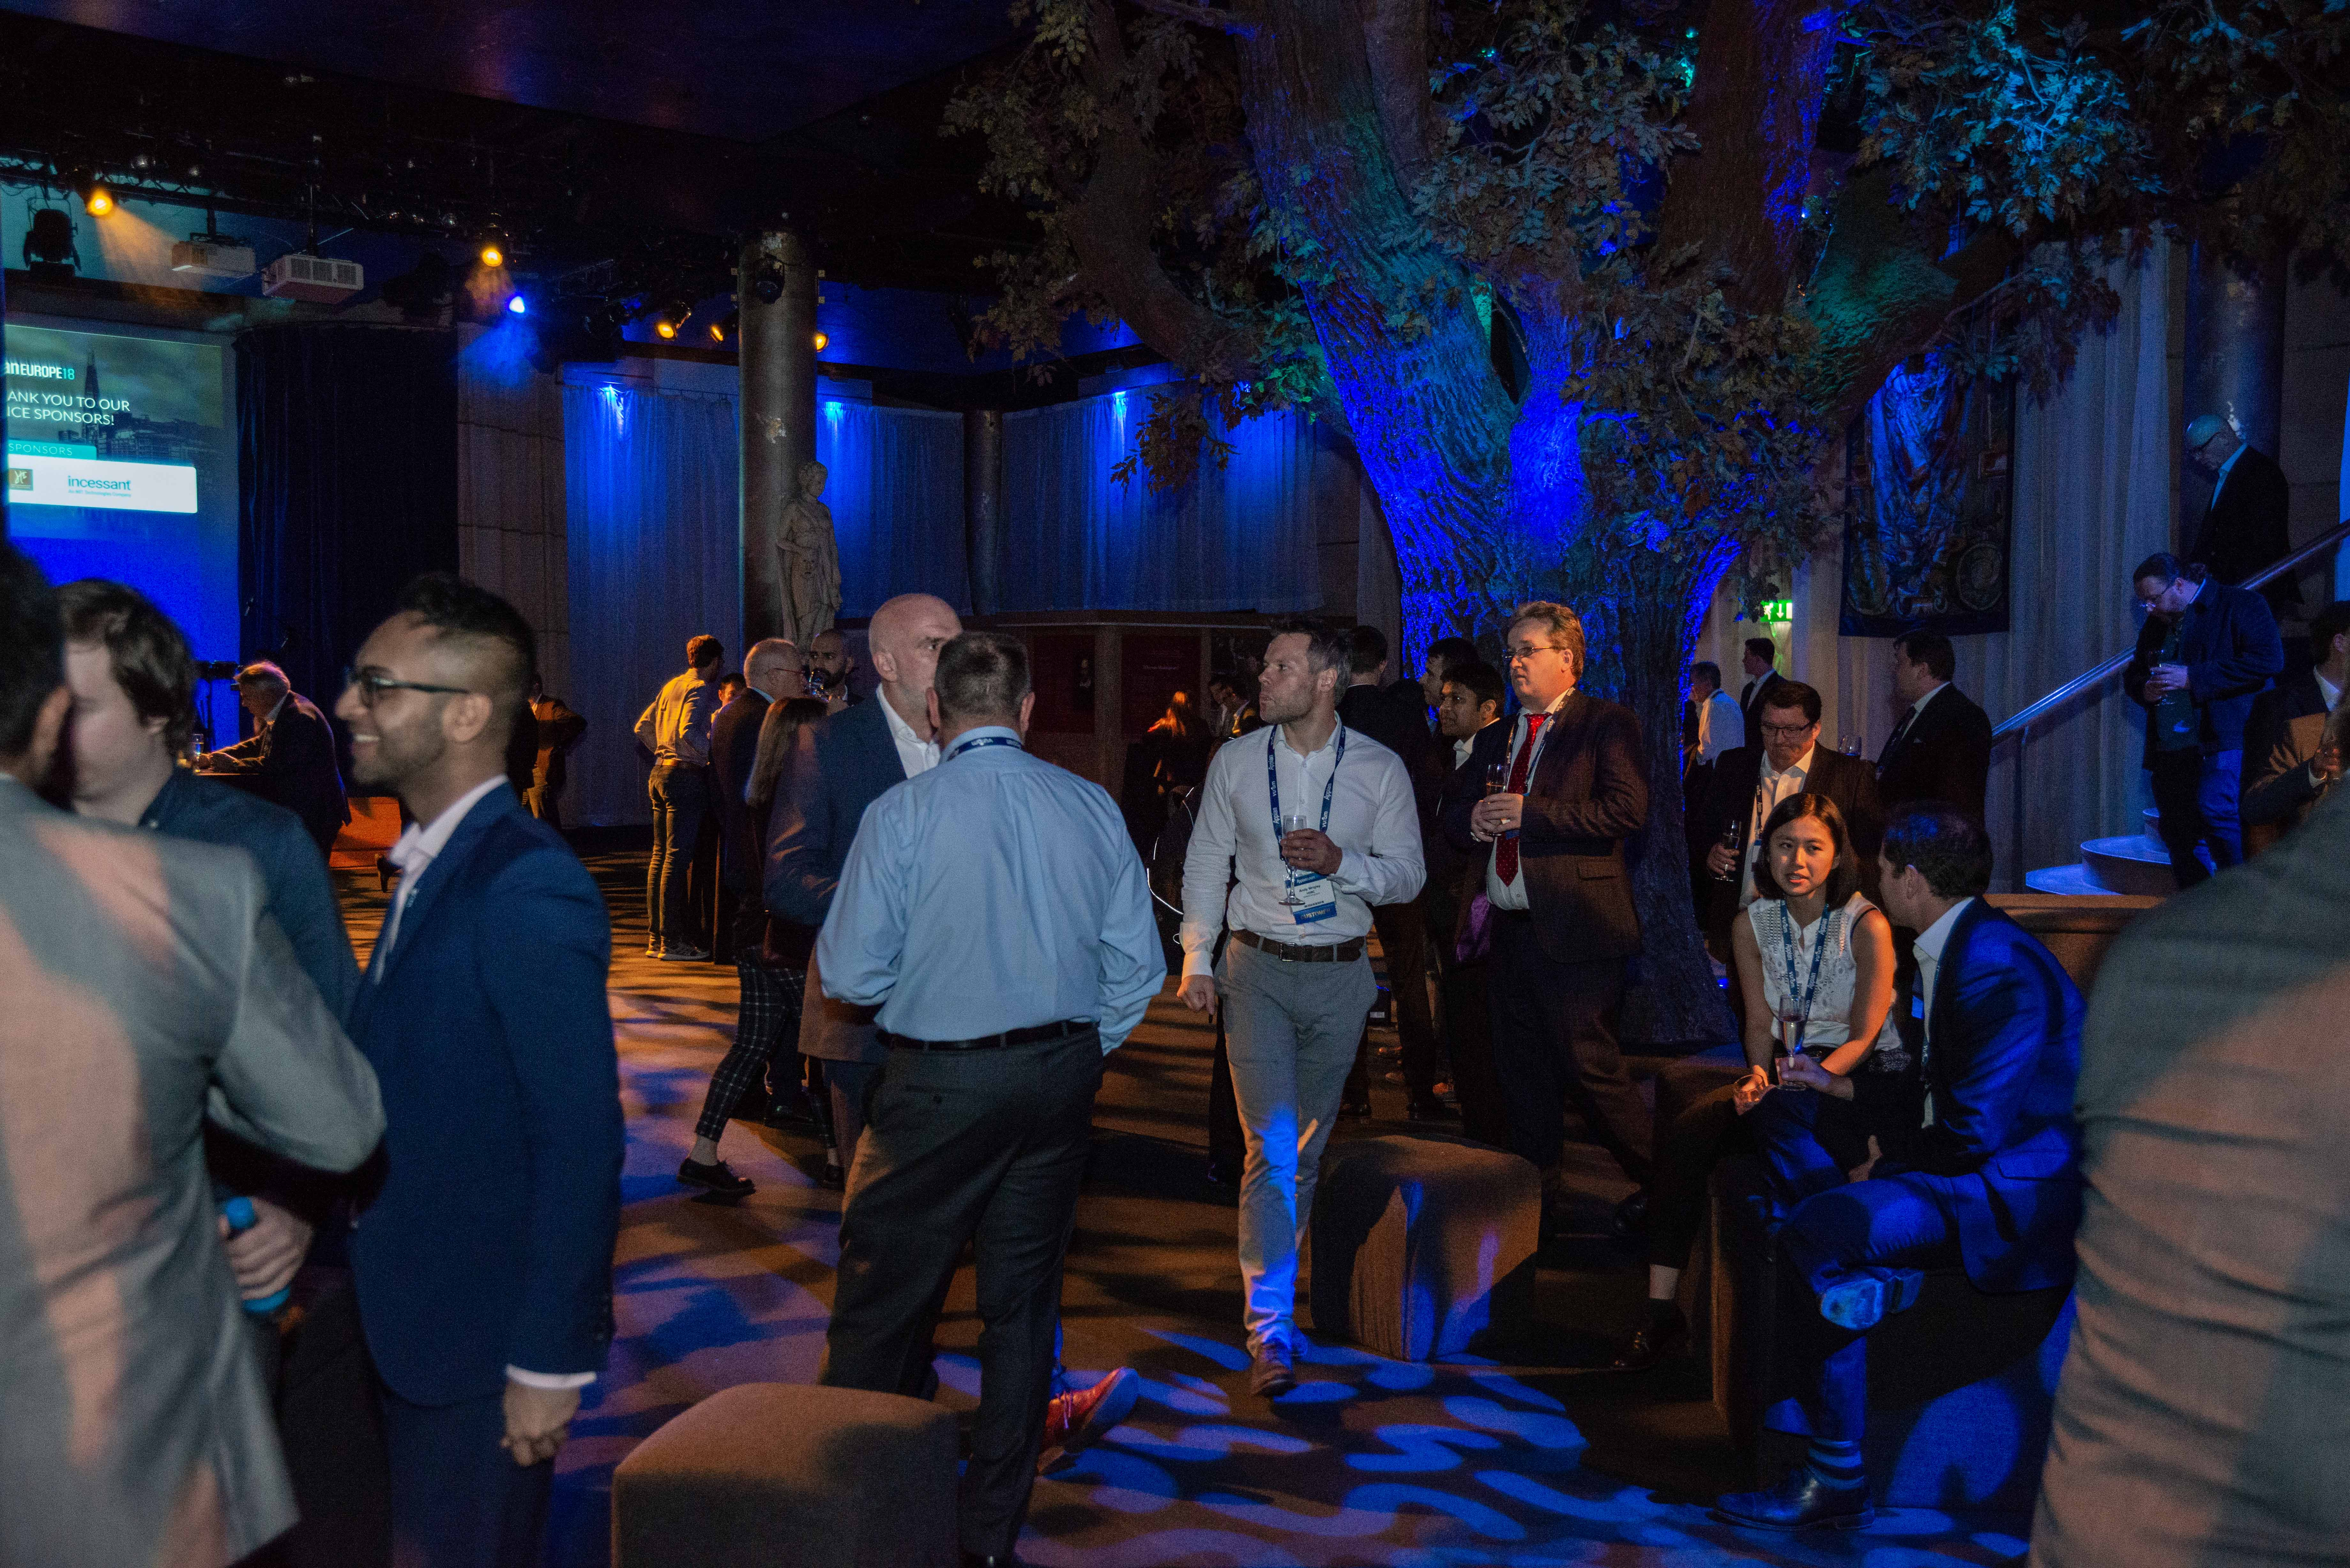 Appian Europe Day 1 After Party at the Underglobe Lodnon